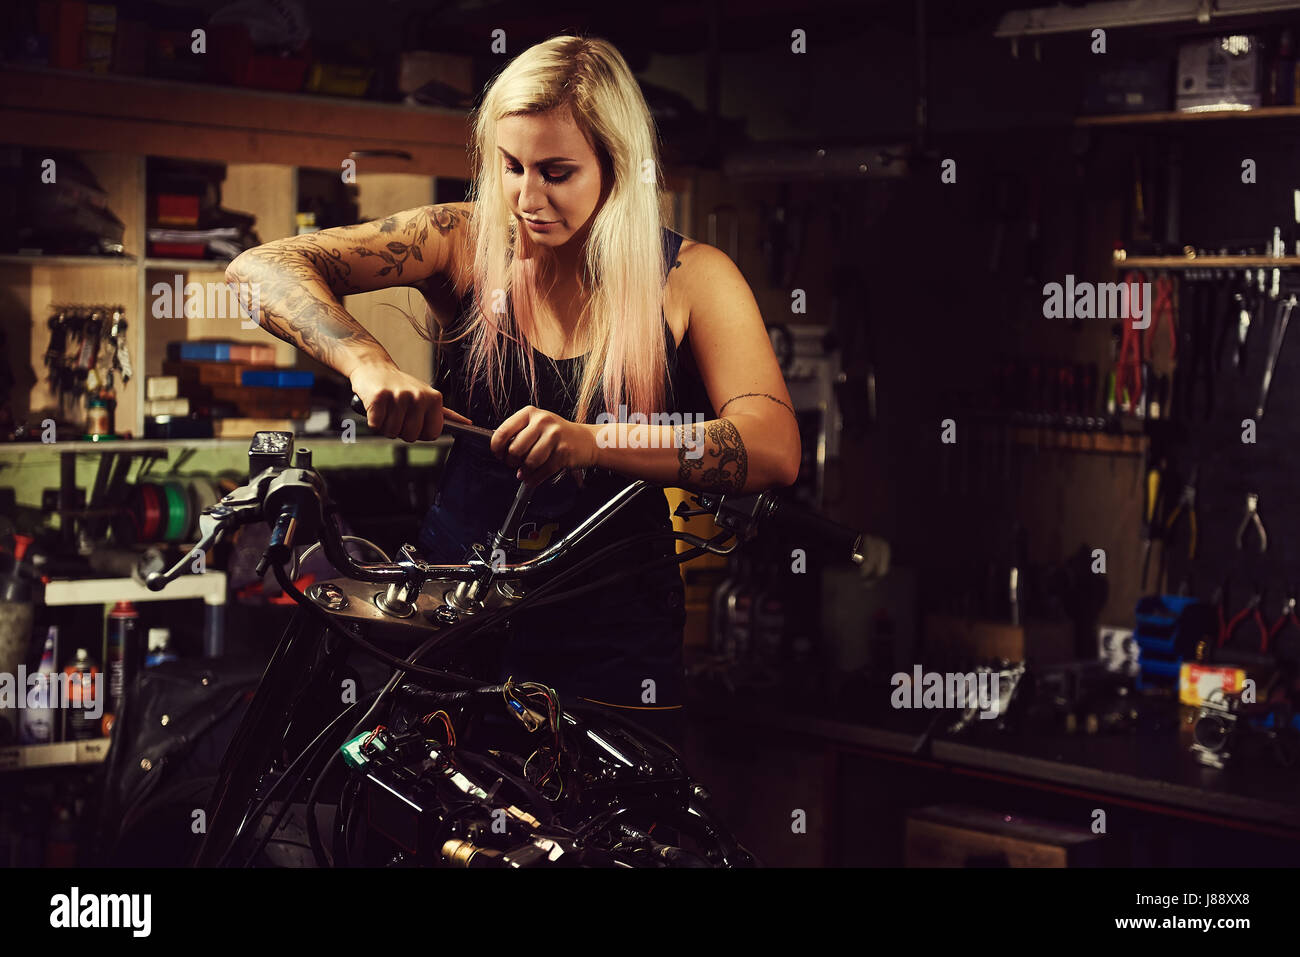 Blond woman mechanic repairing a motorcycle in a workshop - Stock Image